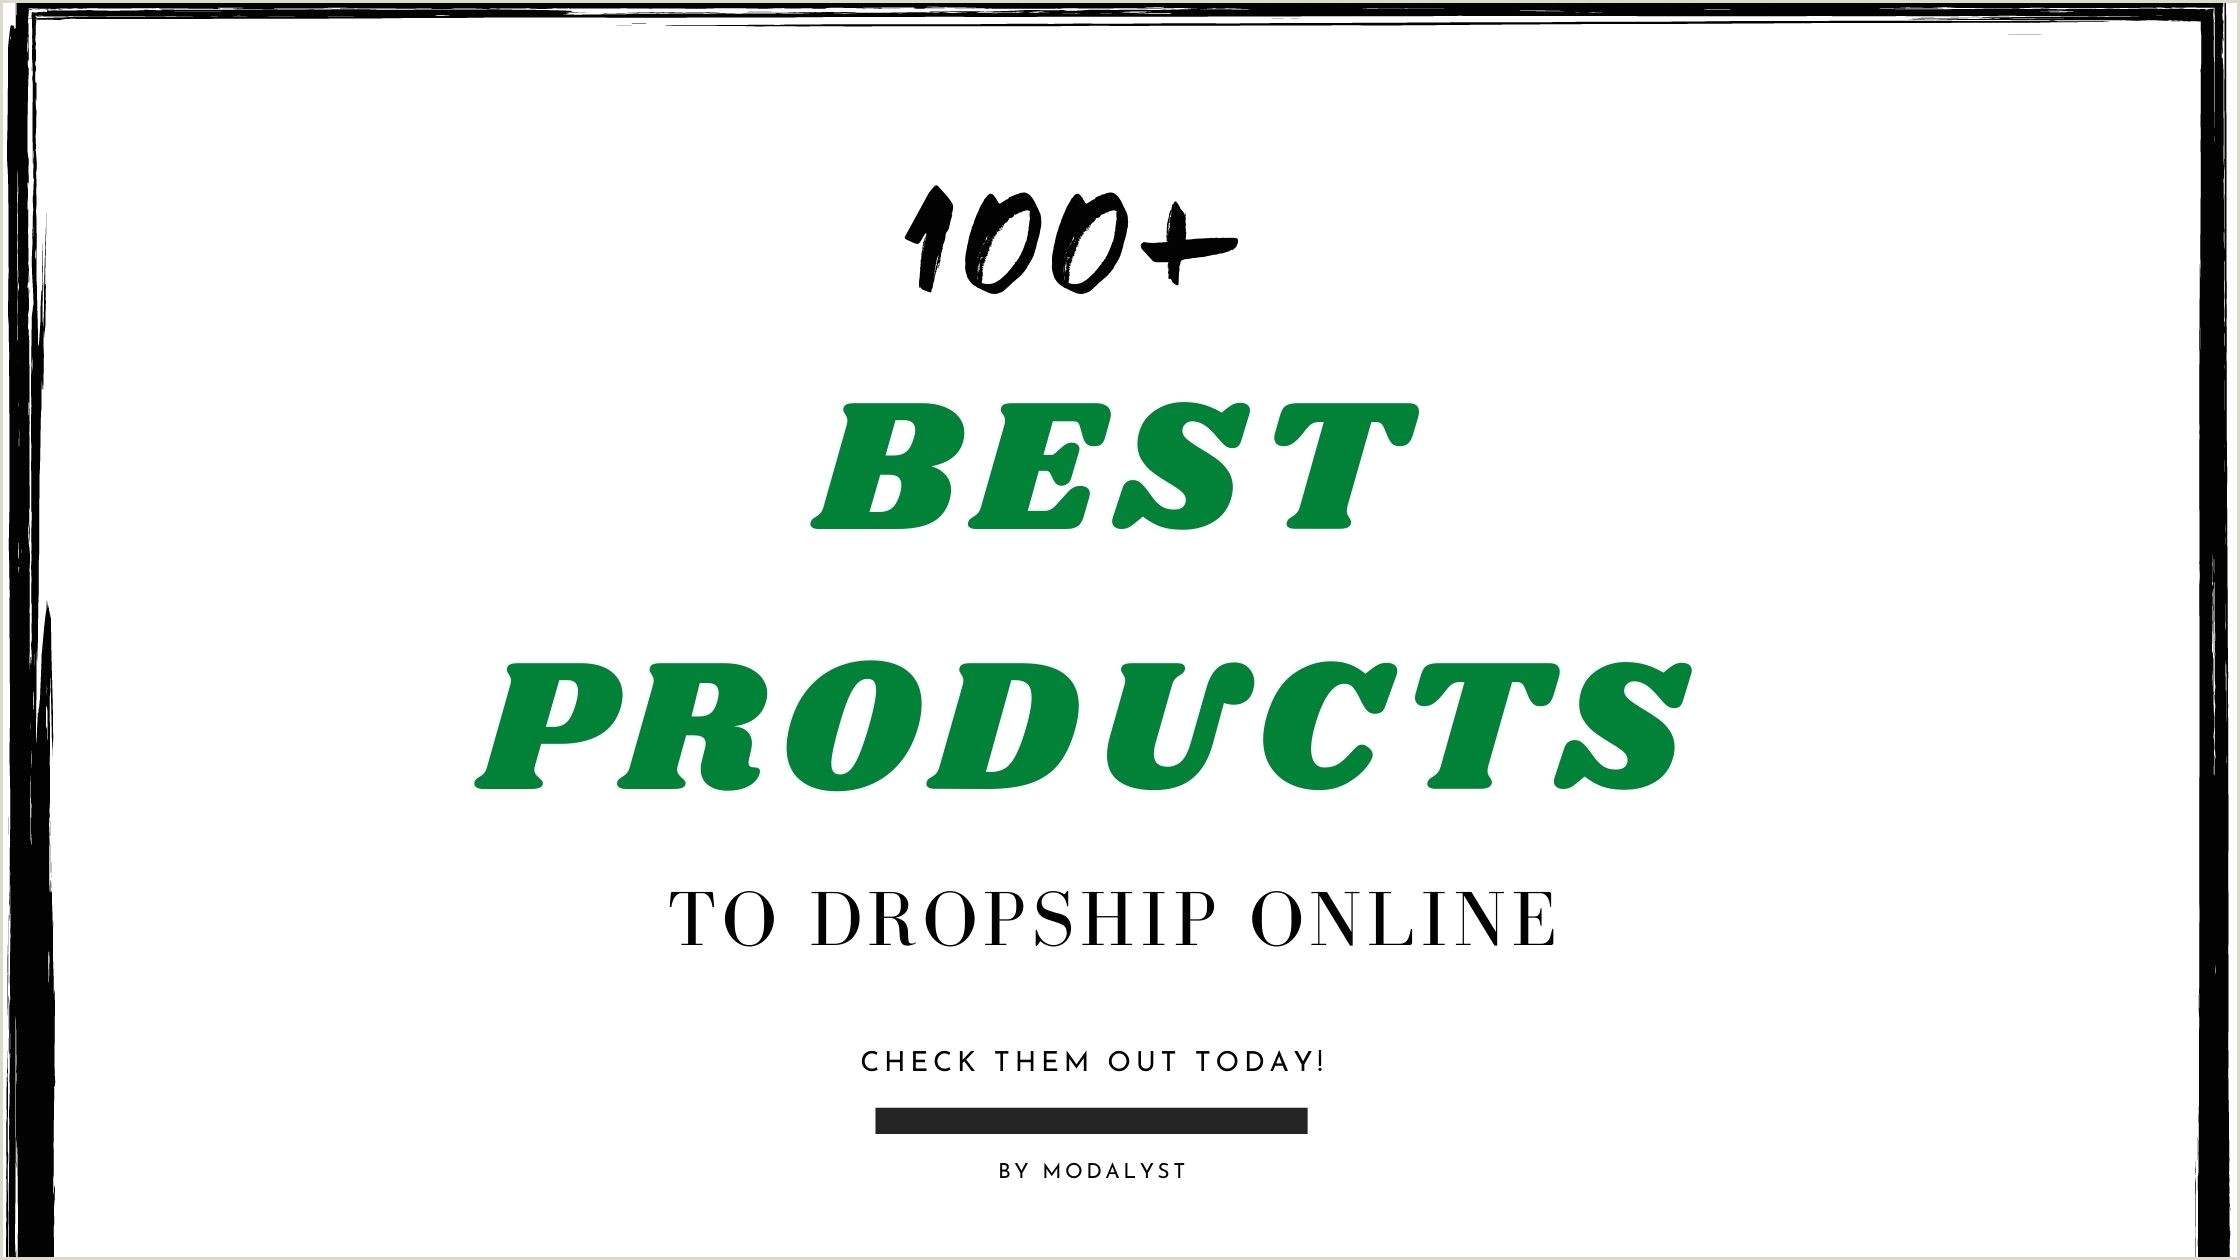 Buisness Cards Ideas 100 Best Products To Dropship In 2020 Modalyst